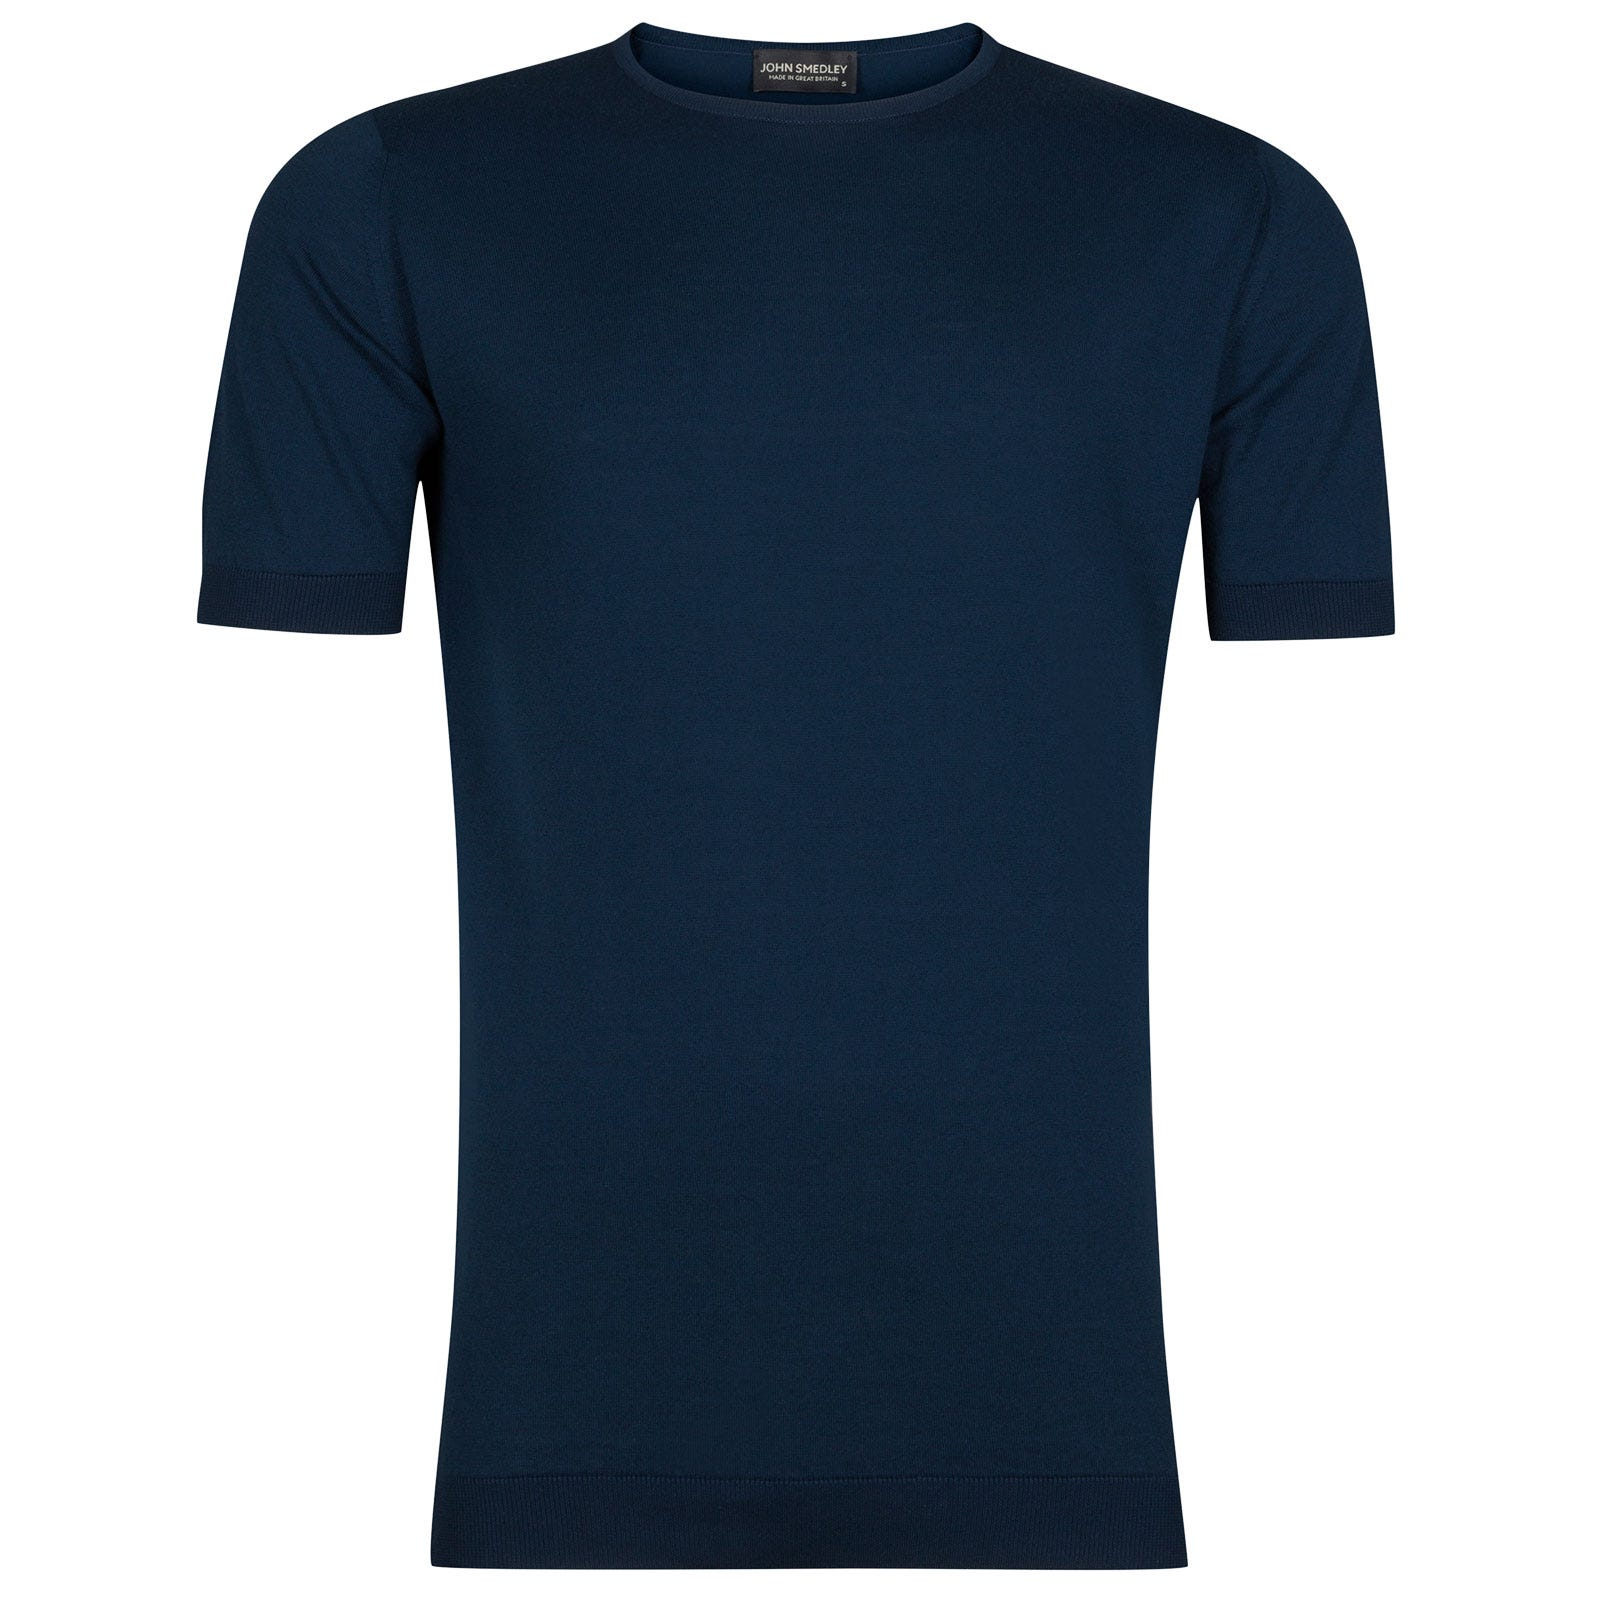 John Smedley belden Sea Island Cotton T-shirt in Indigo-S